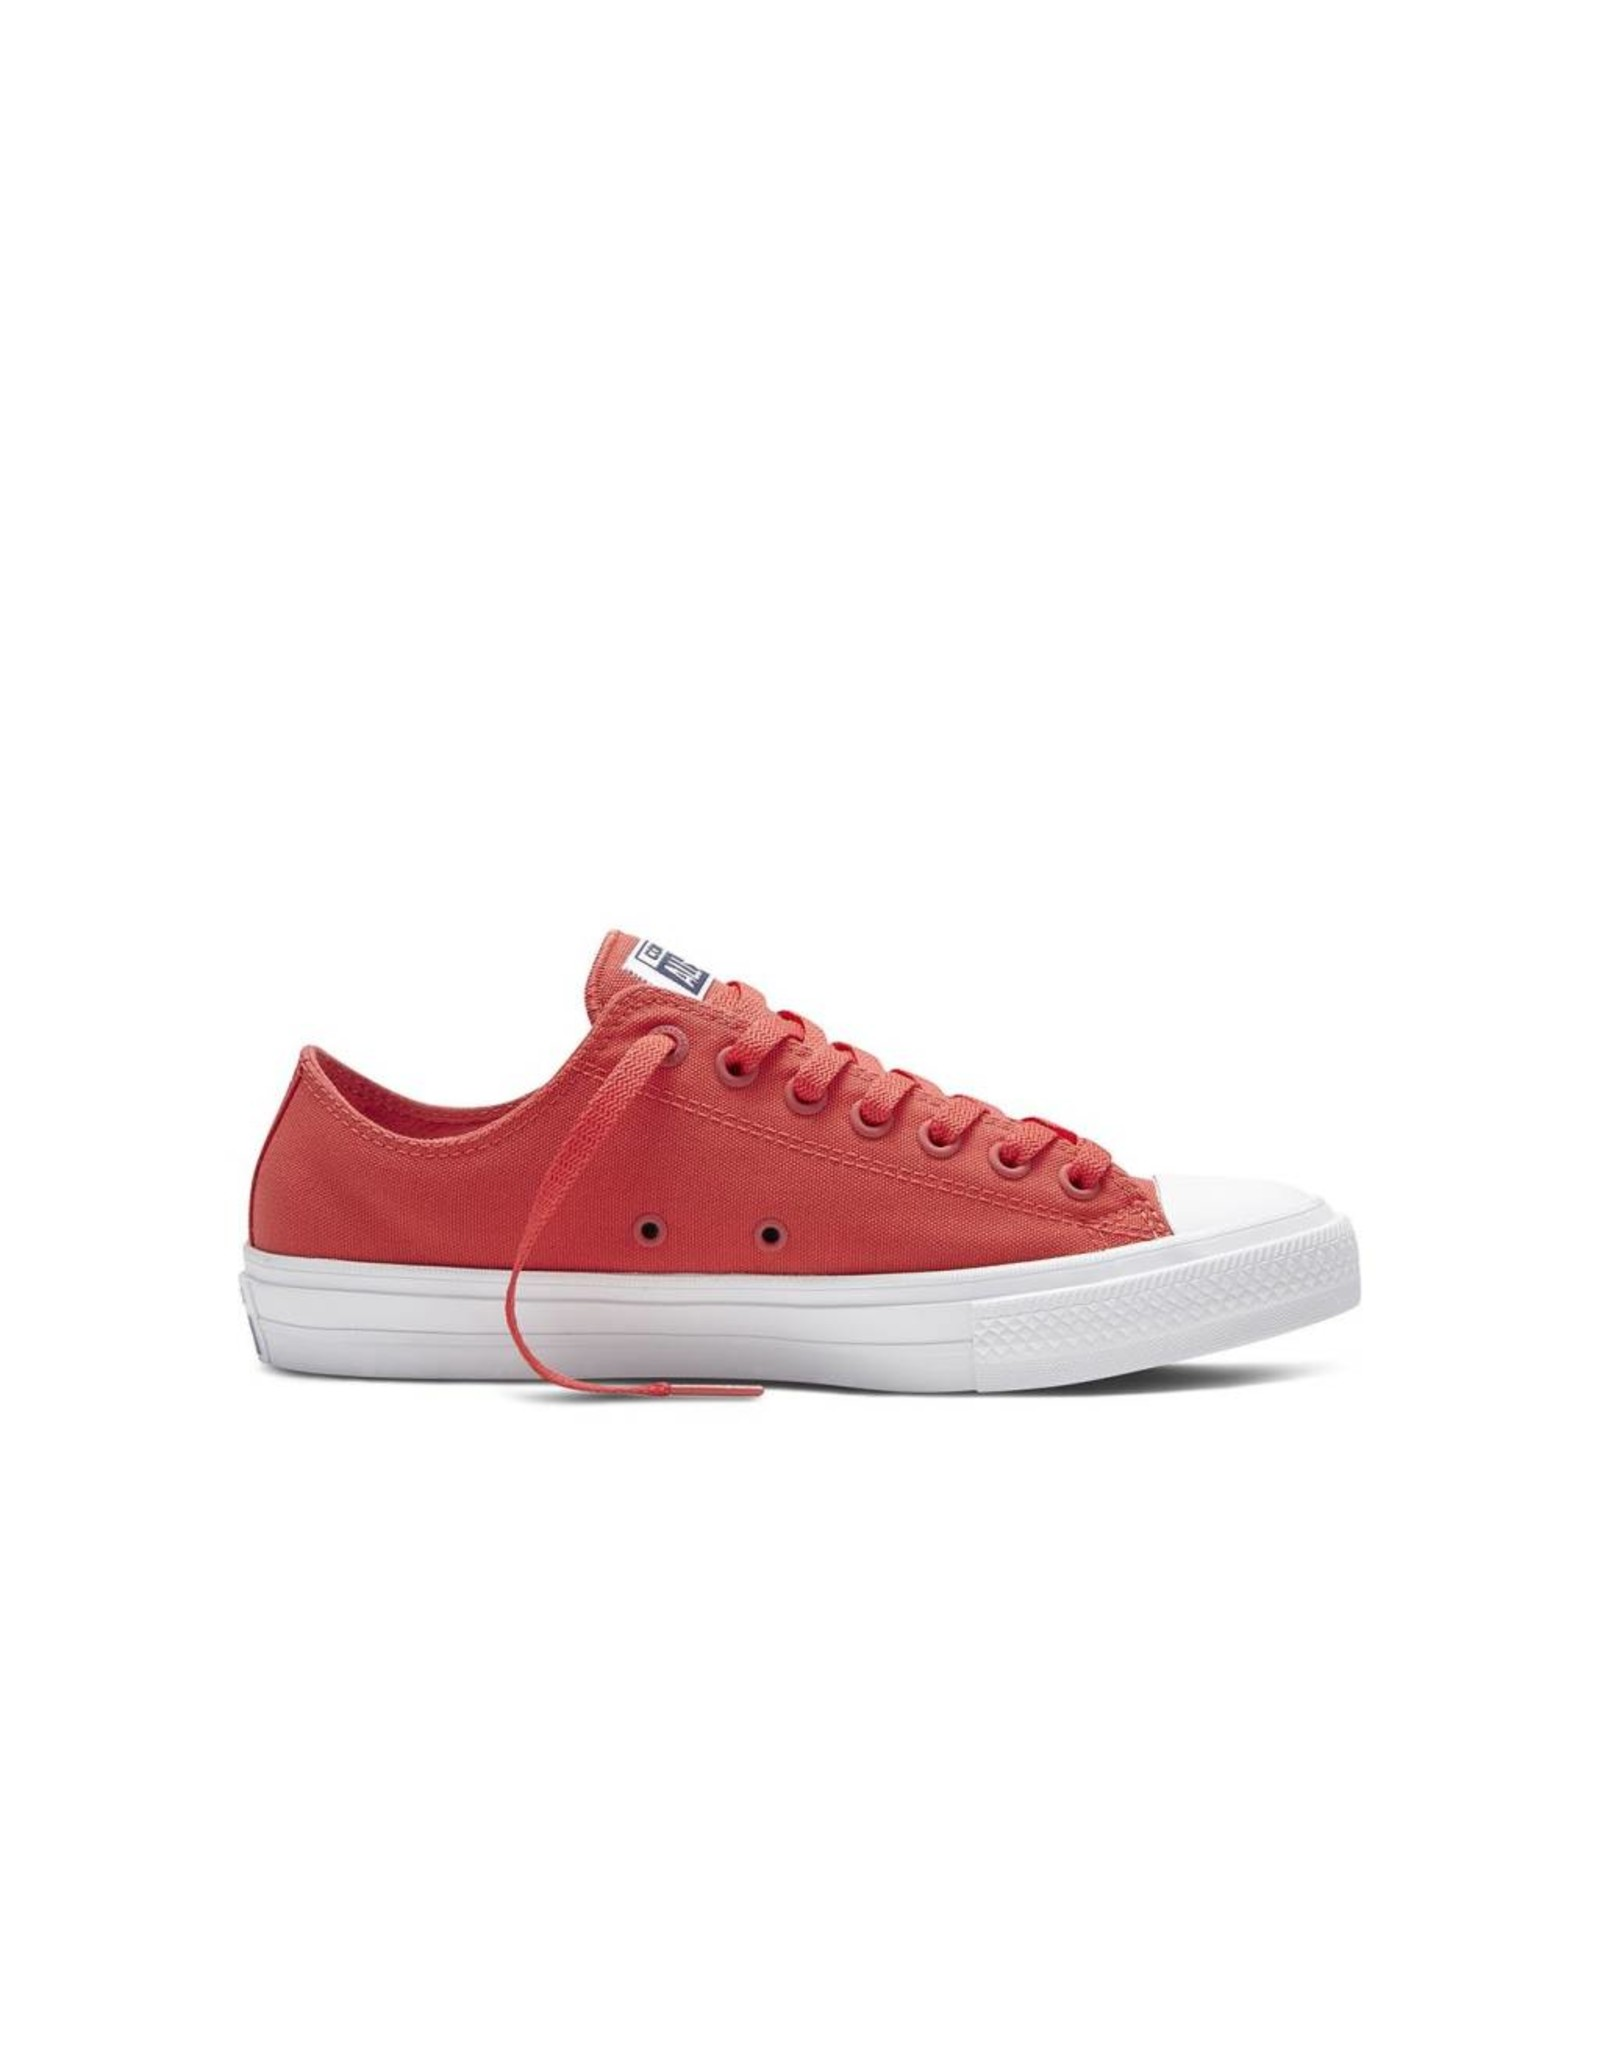 CONVERSE Chuck Taylor All Star  II OX RED NAVY WHITE CT2LCOR-151123C